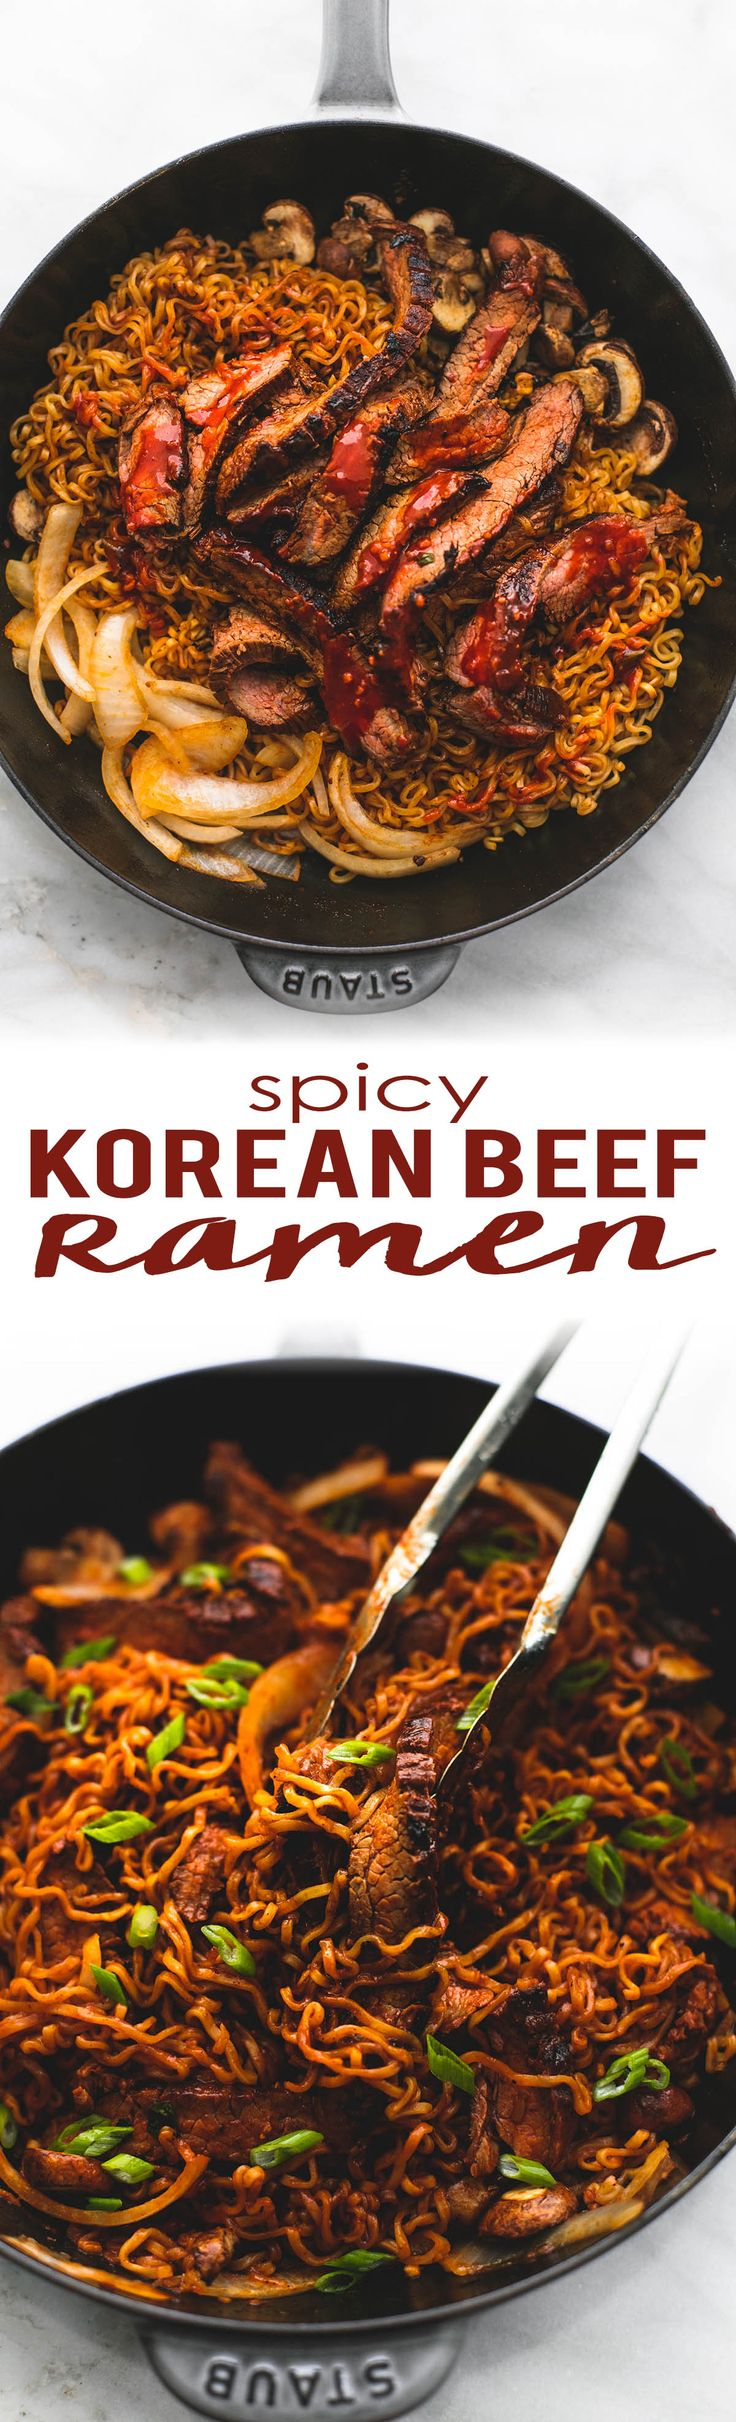 Spicy Korean Beef Ramen | lecremedelacrumb.com (food tips ground beef)